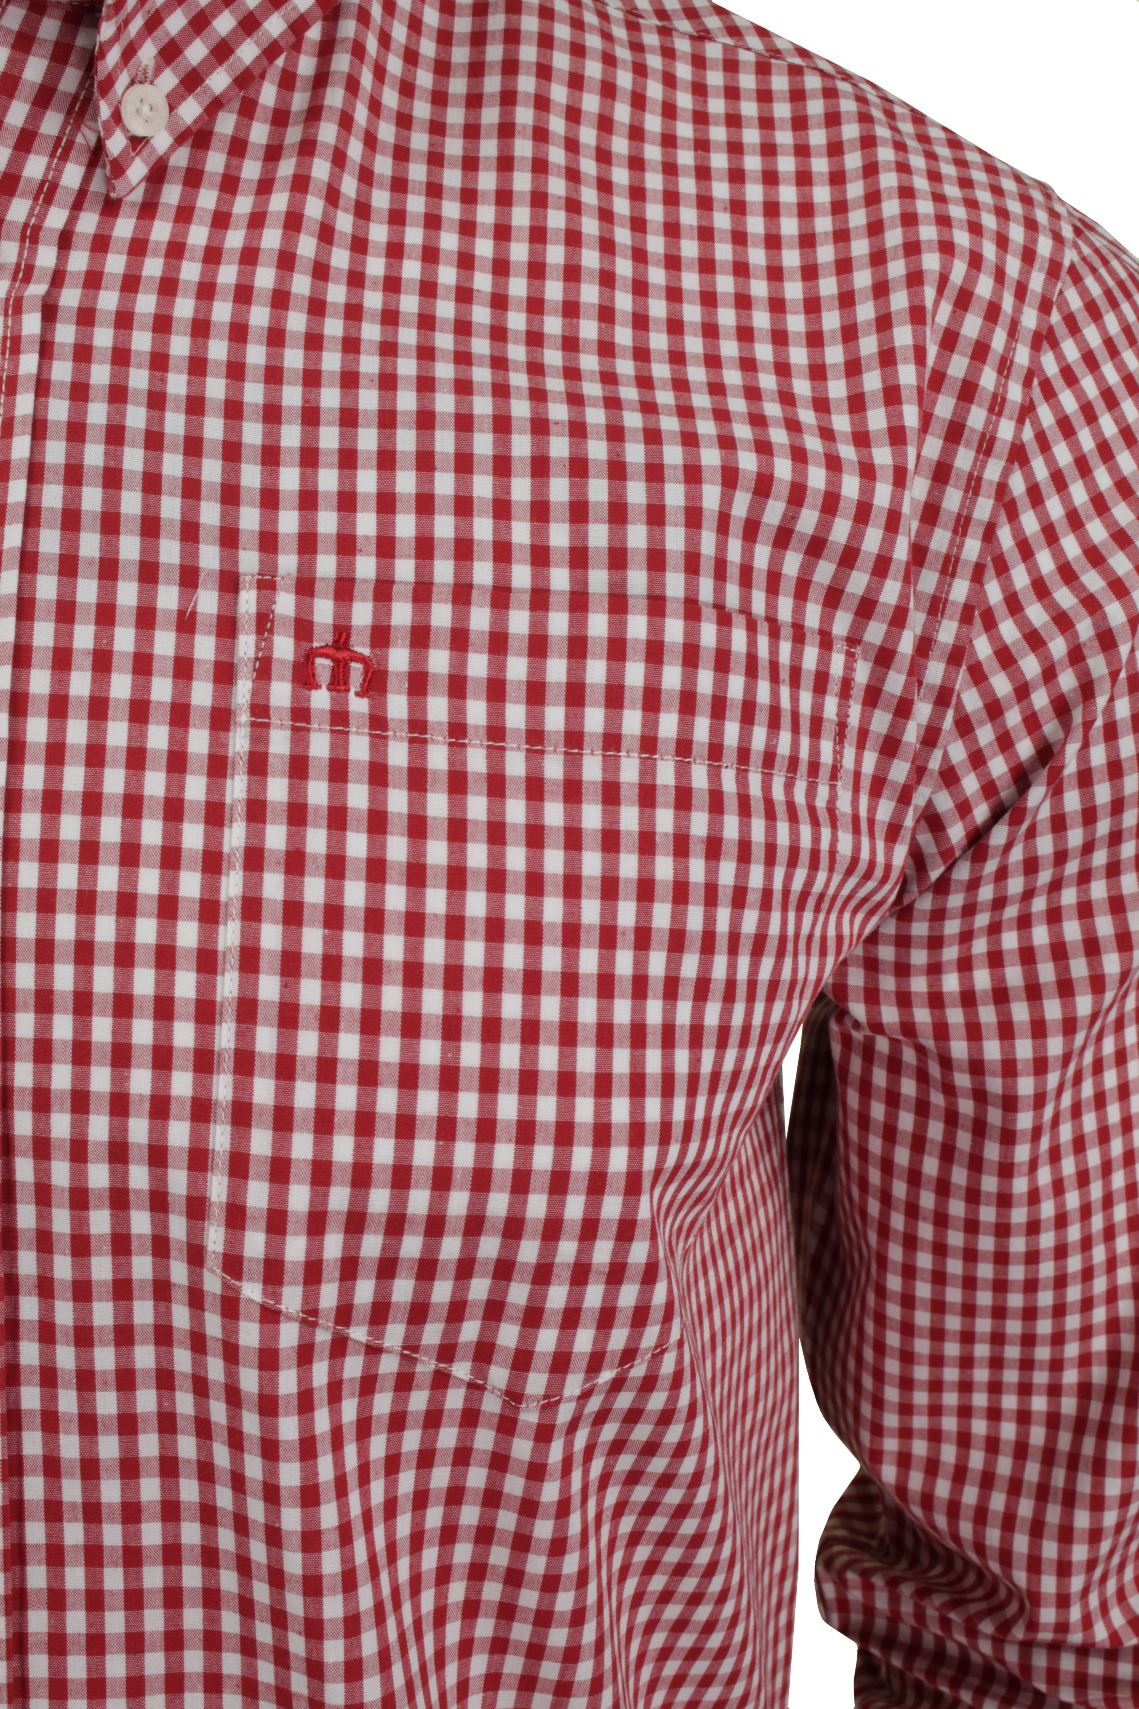 Mens Long Sleeved Gingham Shirt by Merc London 'Japster'_02_1506215Japster_Blood